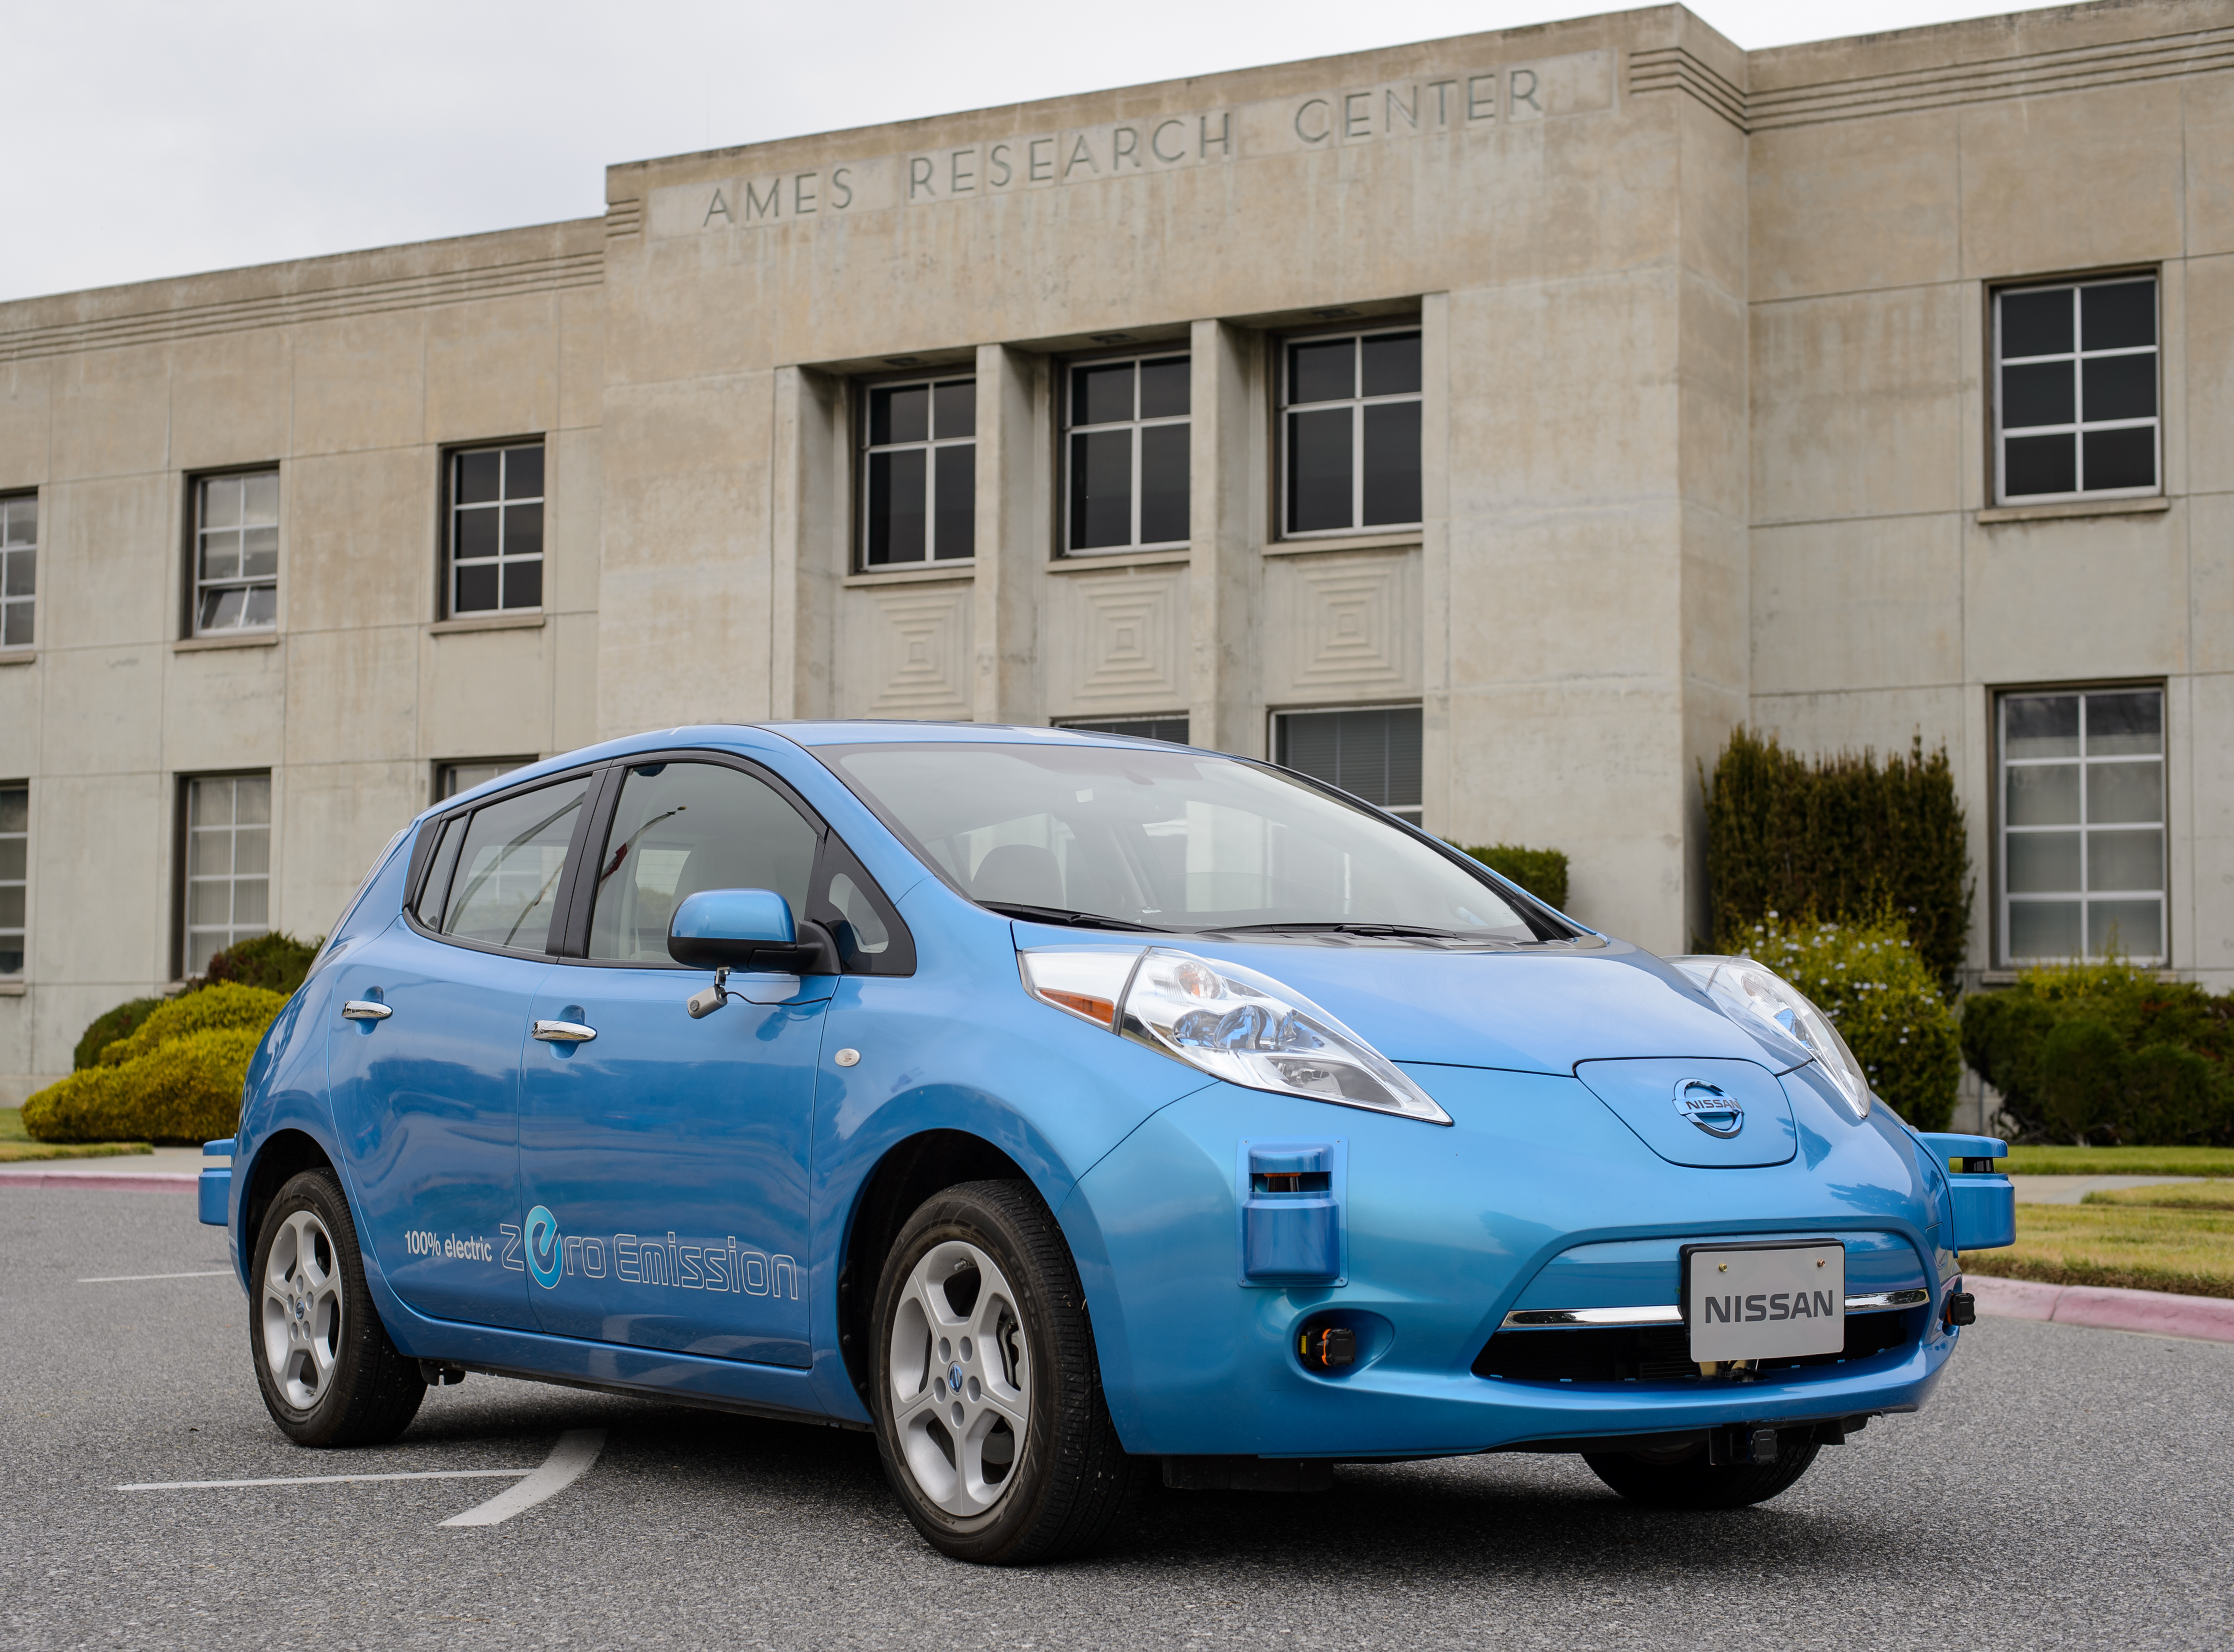 From Rovers to Self-Driving Cars: NASA Ames and Nissan North America ...